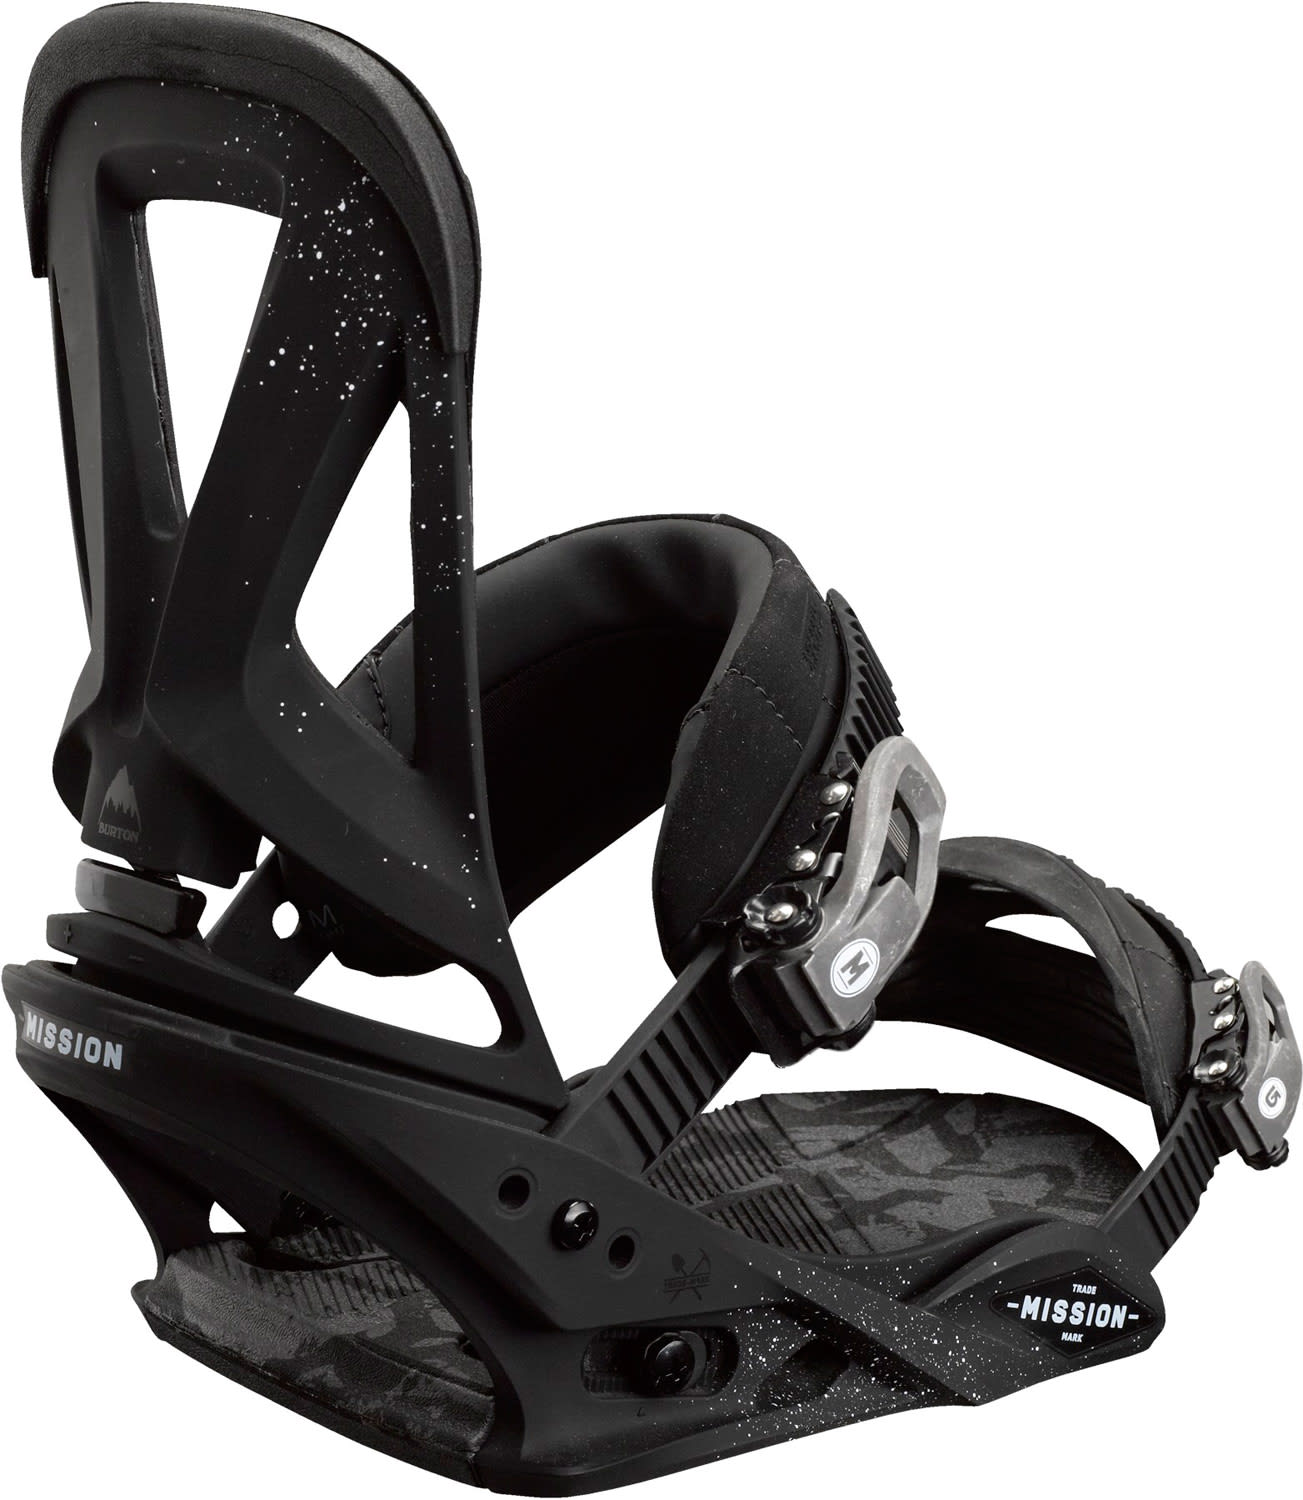 On Sale Burton Mission Snowboard Bindings Up To 60% Off